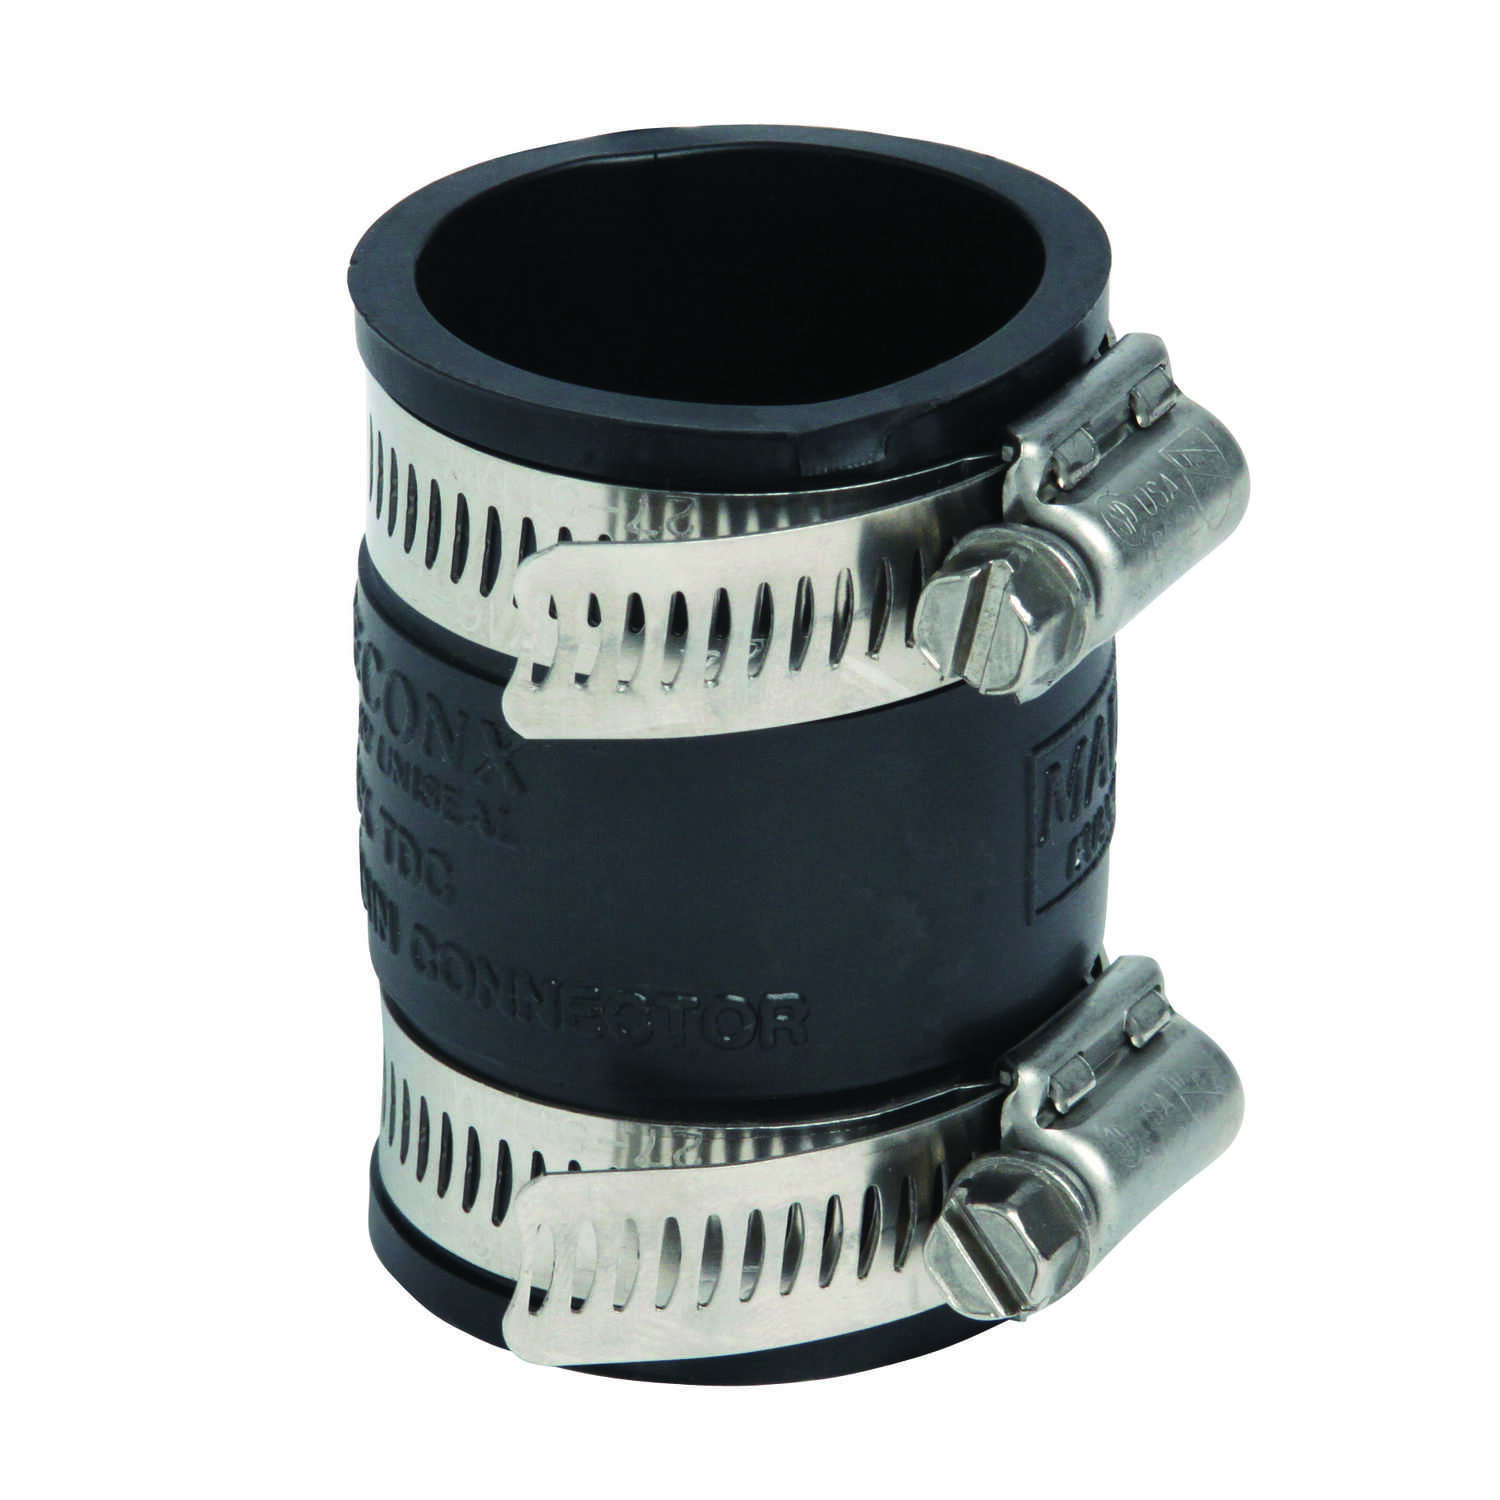 Pipeconx  1-1/2in. or 1-1/4 in. Dia. x 1-1/2in. or 1-1/4 in. Dia. Tubular Drain Connector